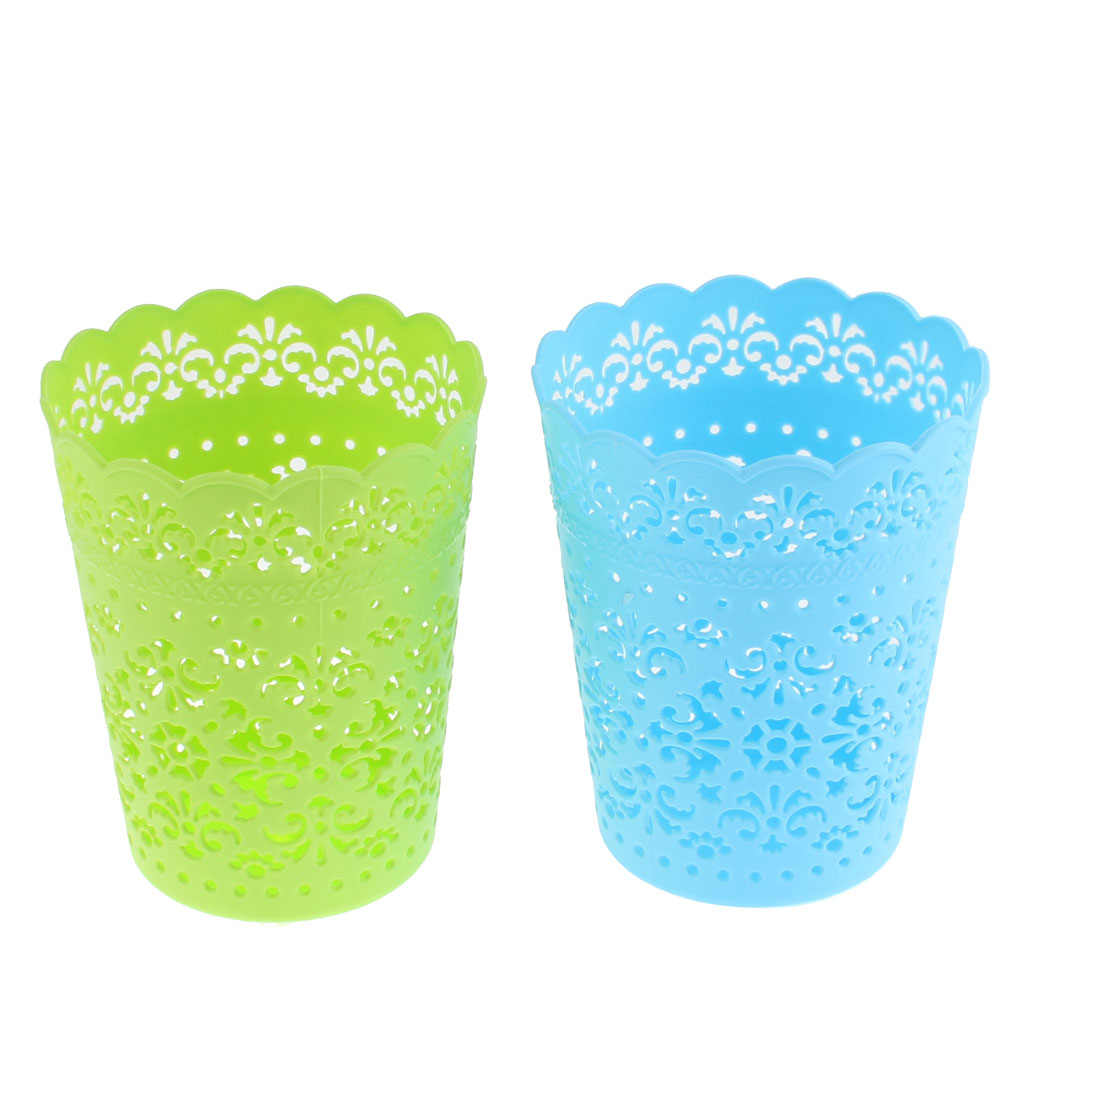 Home Plastic Hollow Out Floral Design Storage Basket Green Blue 2 Pcs